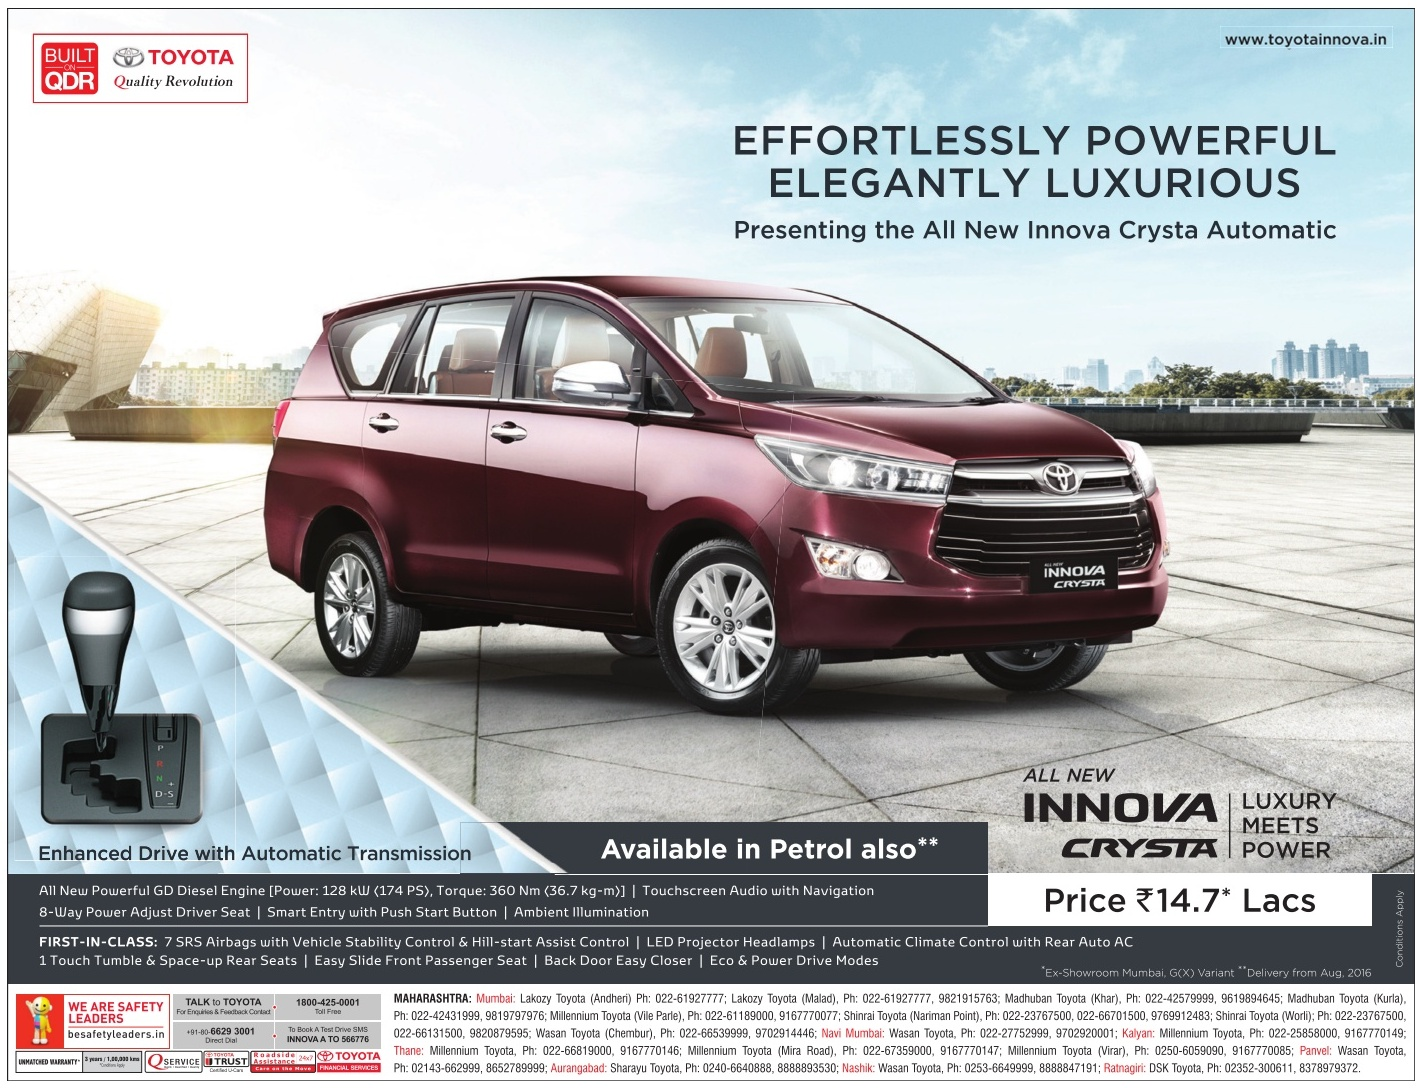 Toyota Innova Crysta Petrol Officially Announced For India New